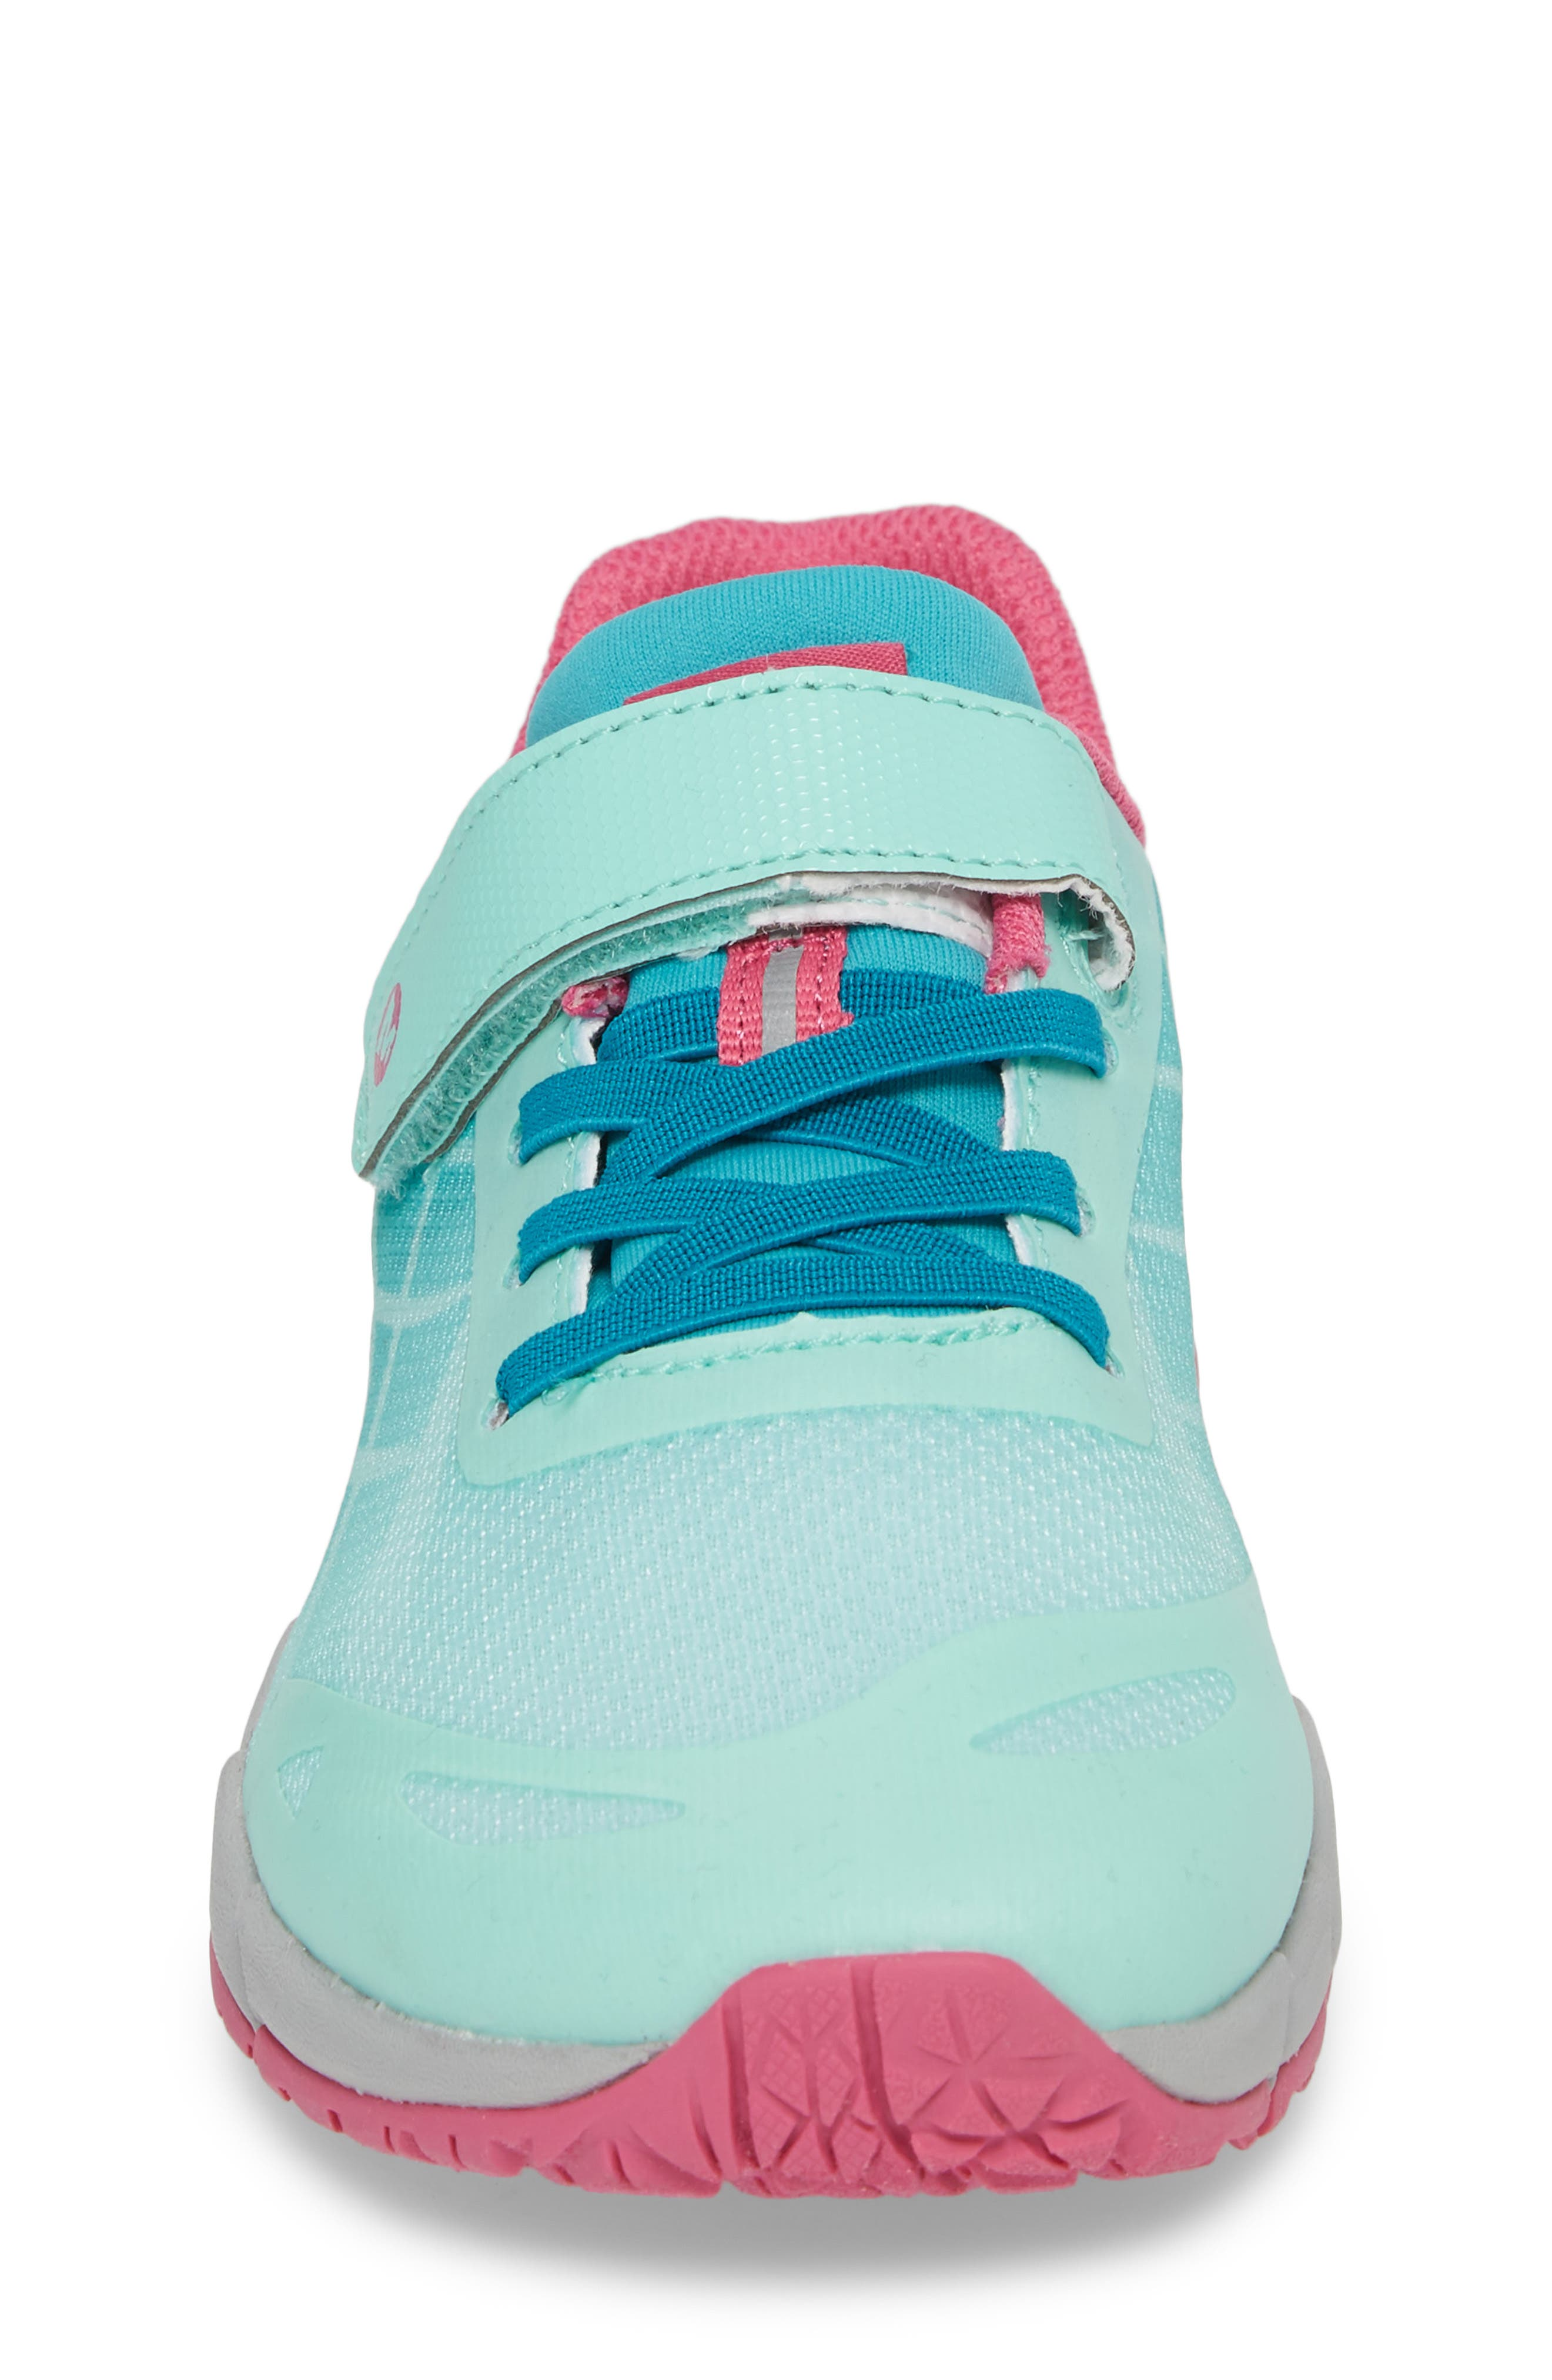 Bare Access Sneaker,                             Alternate thumbnail 4, color,                             Turquoise/ Berry